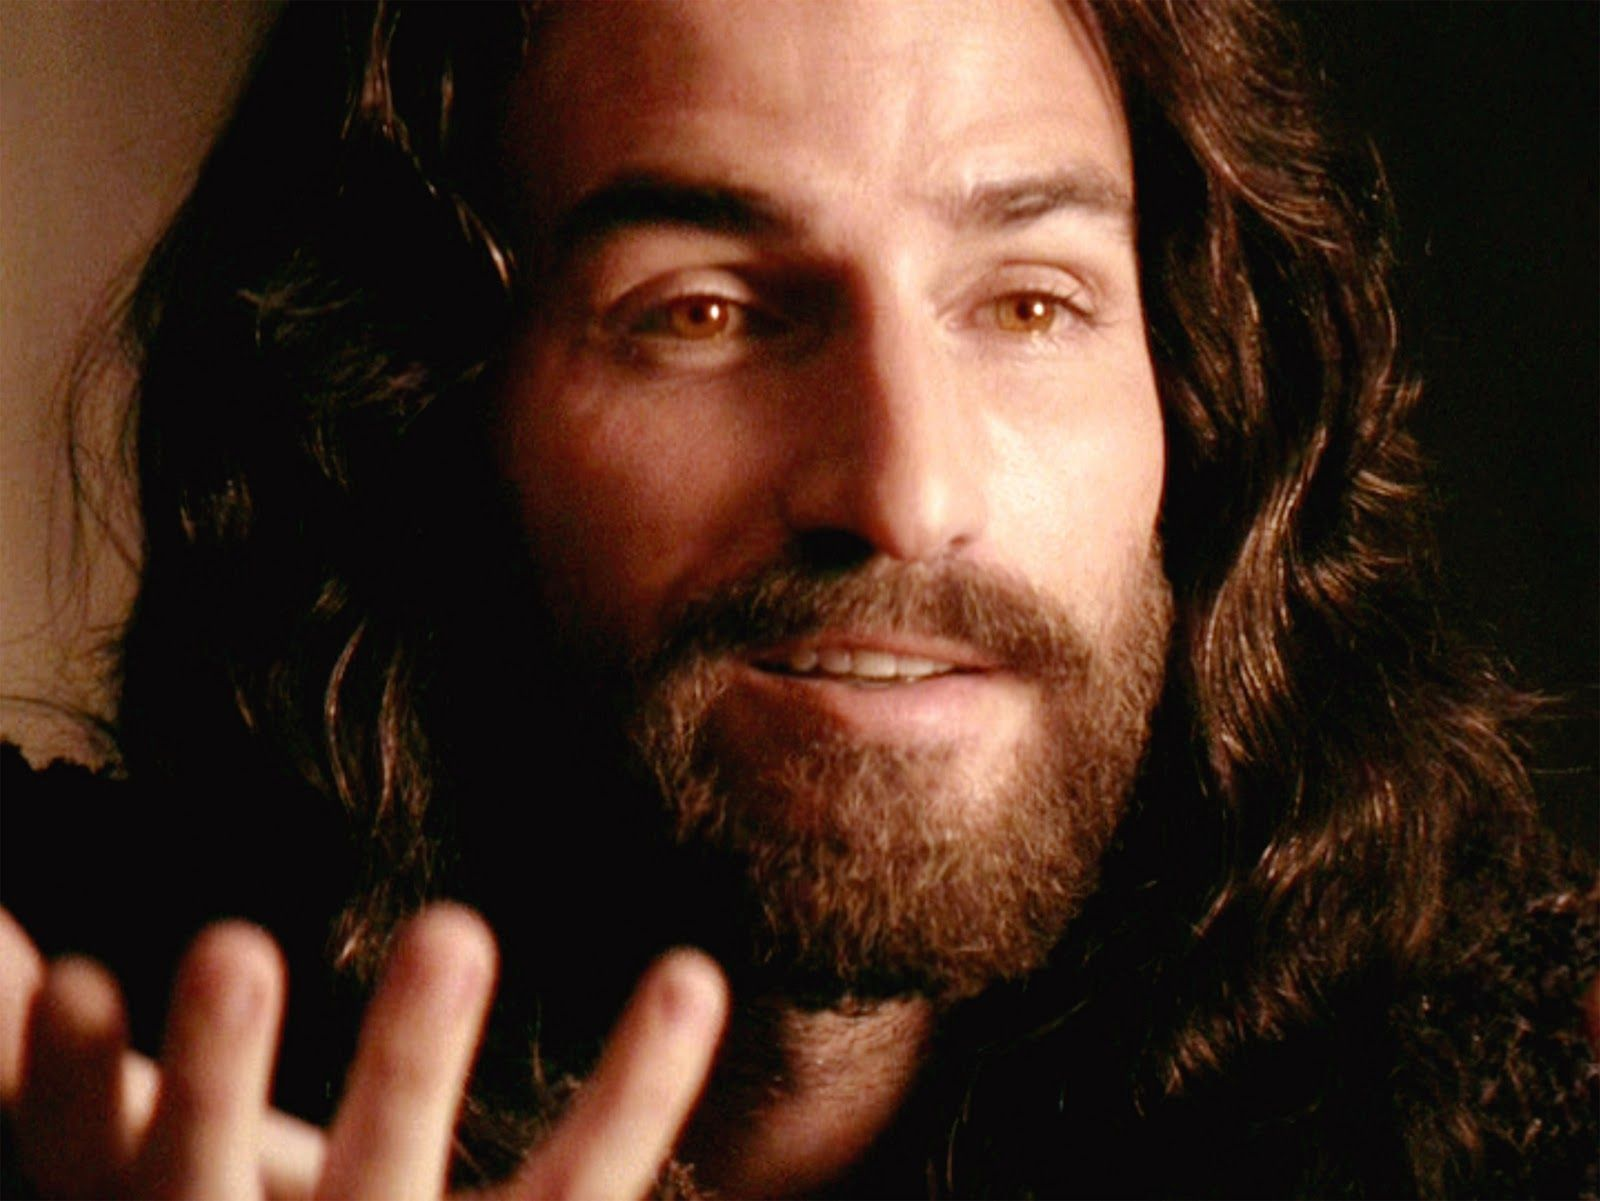 images of jesus the messiah the movie the passion of the